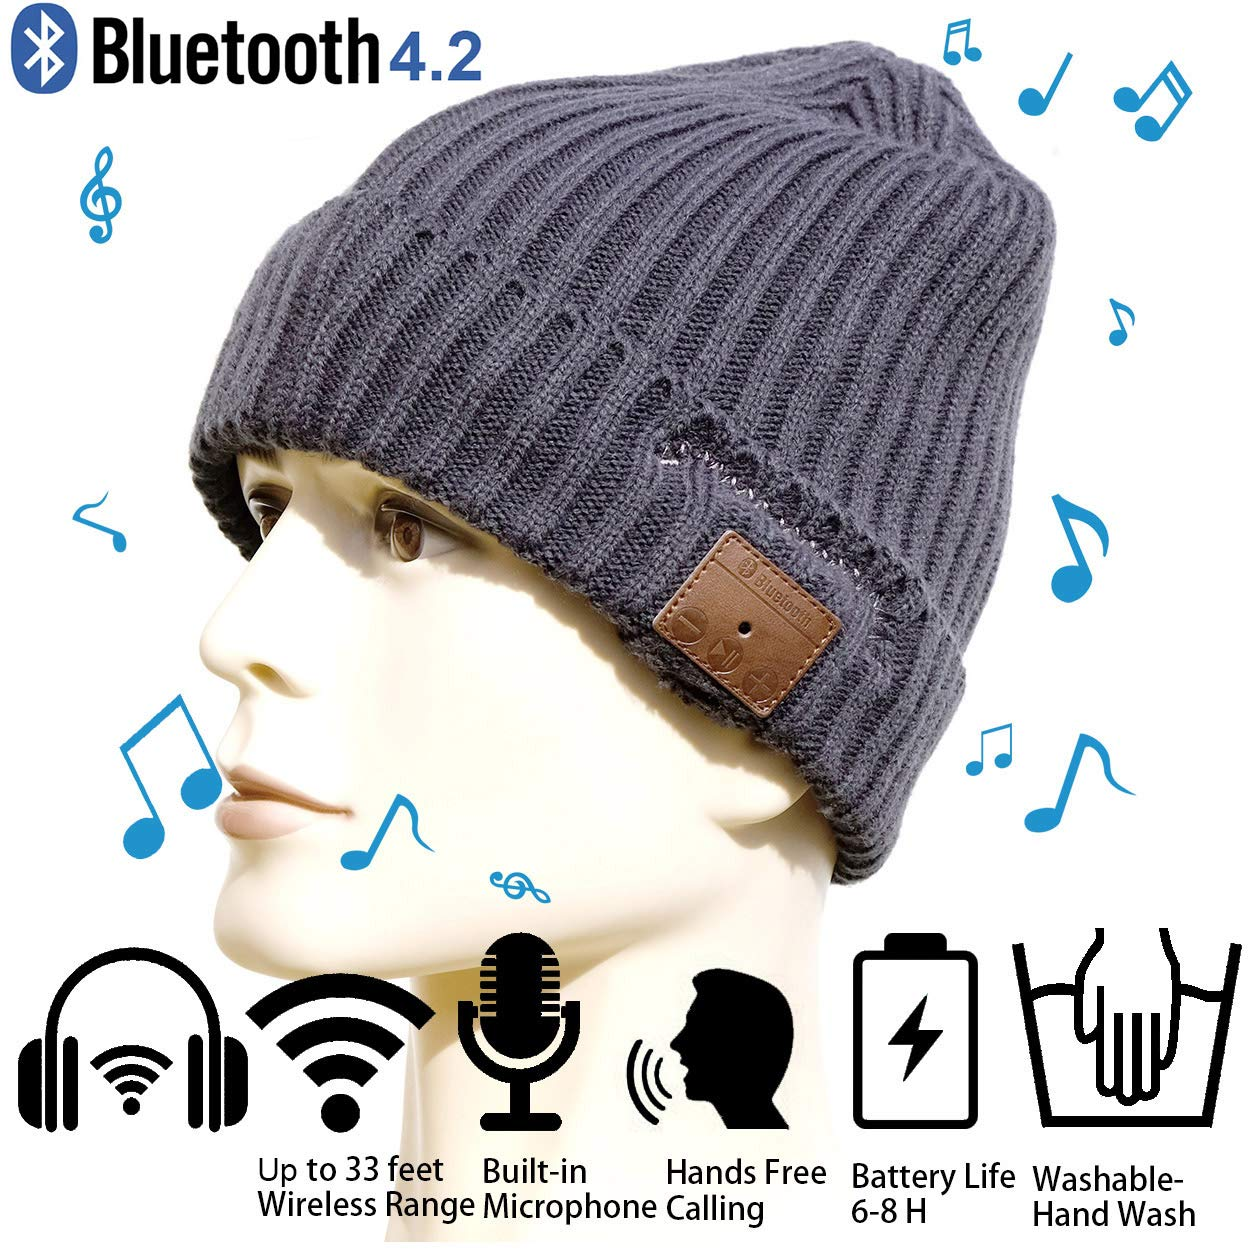 Christmas Tech Gift Bluetooth Beanie Winter Hat Running Headphones Wireless Musical Knit Cap with Stereo Headsets & Mic Unique Thick Warm hat for Women, Men, Boys and Girls (Gray) aGreatGift